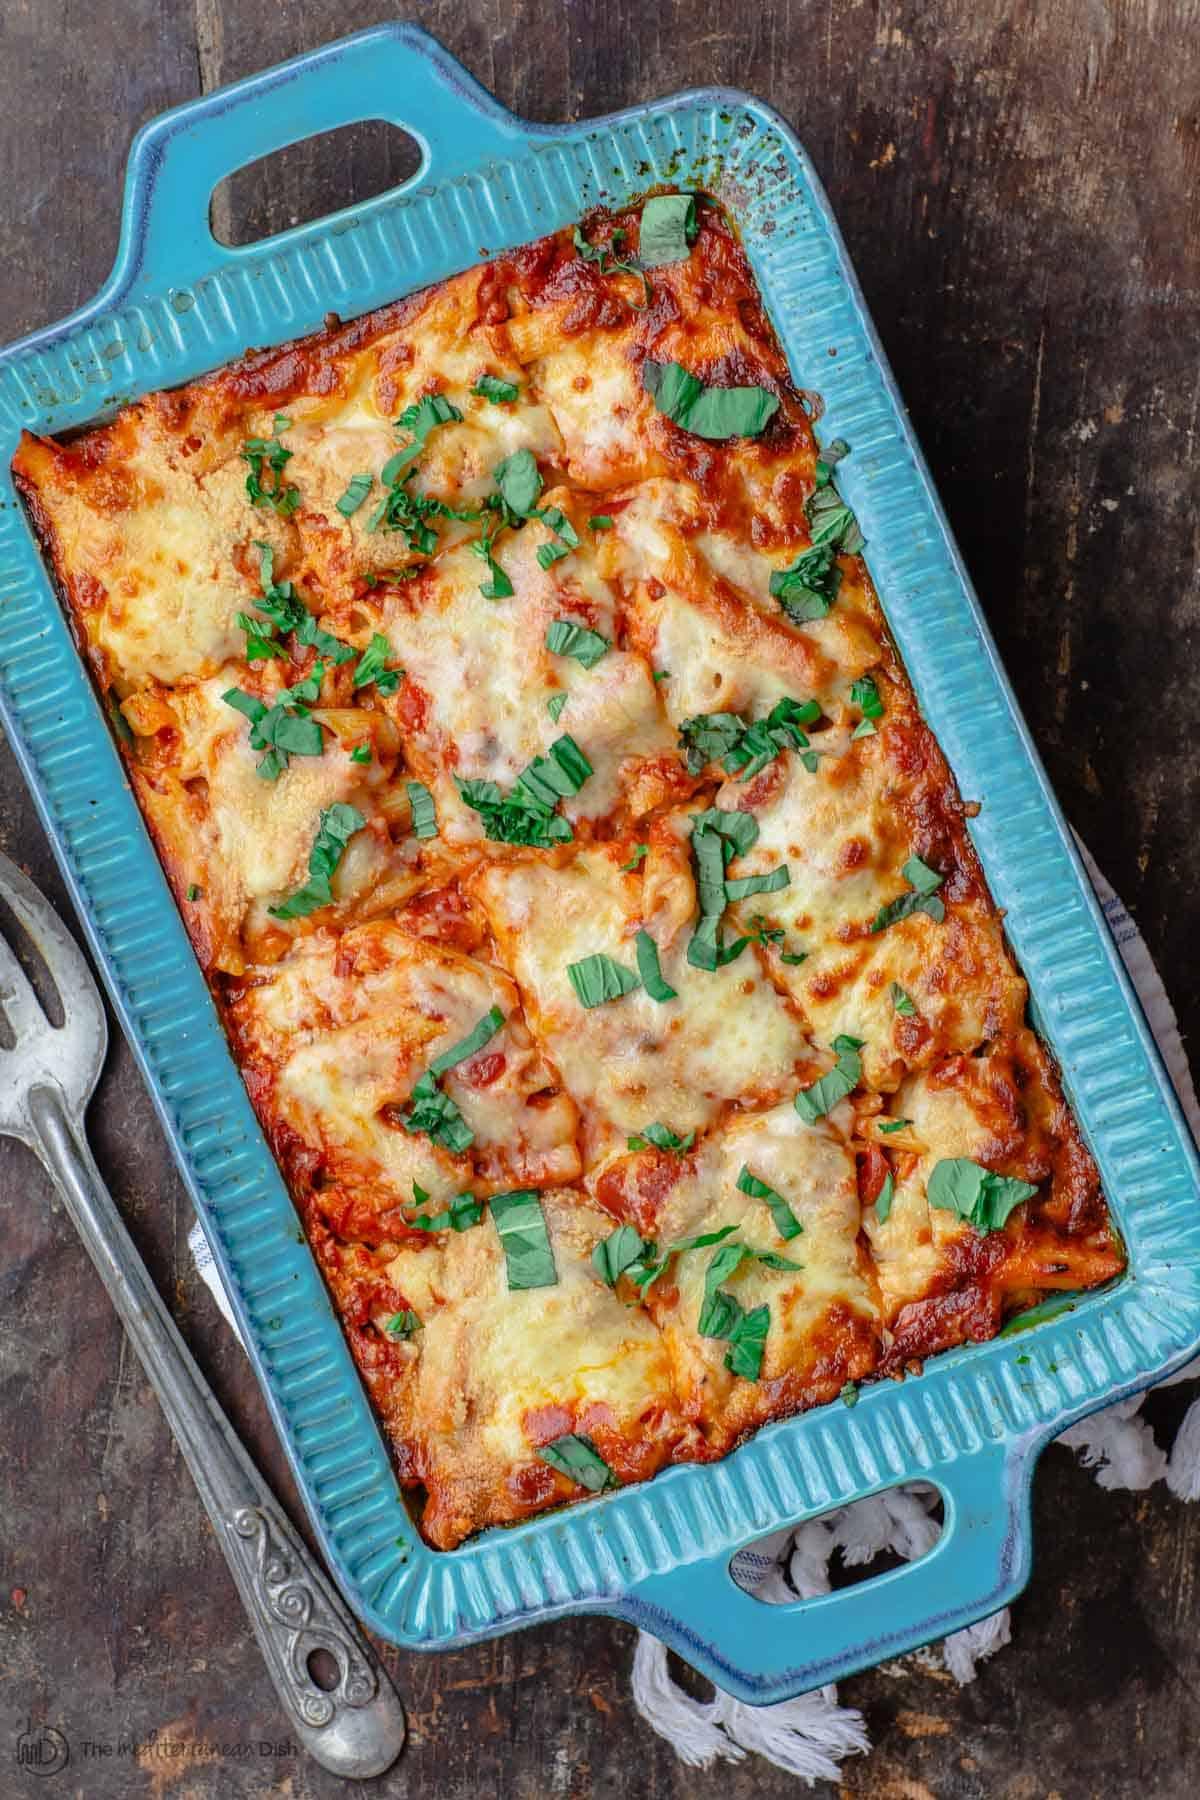 Vegetarian Baked Ziti in Blue Casserole Dish. Serving spoon on the side